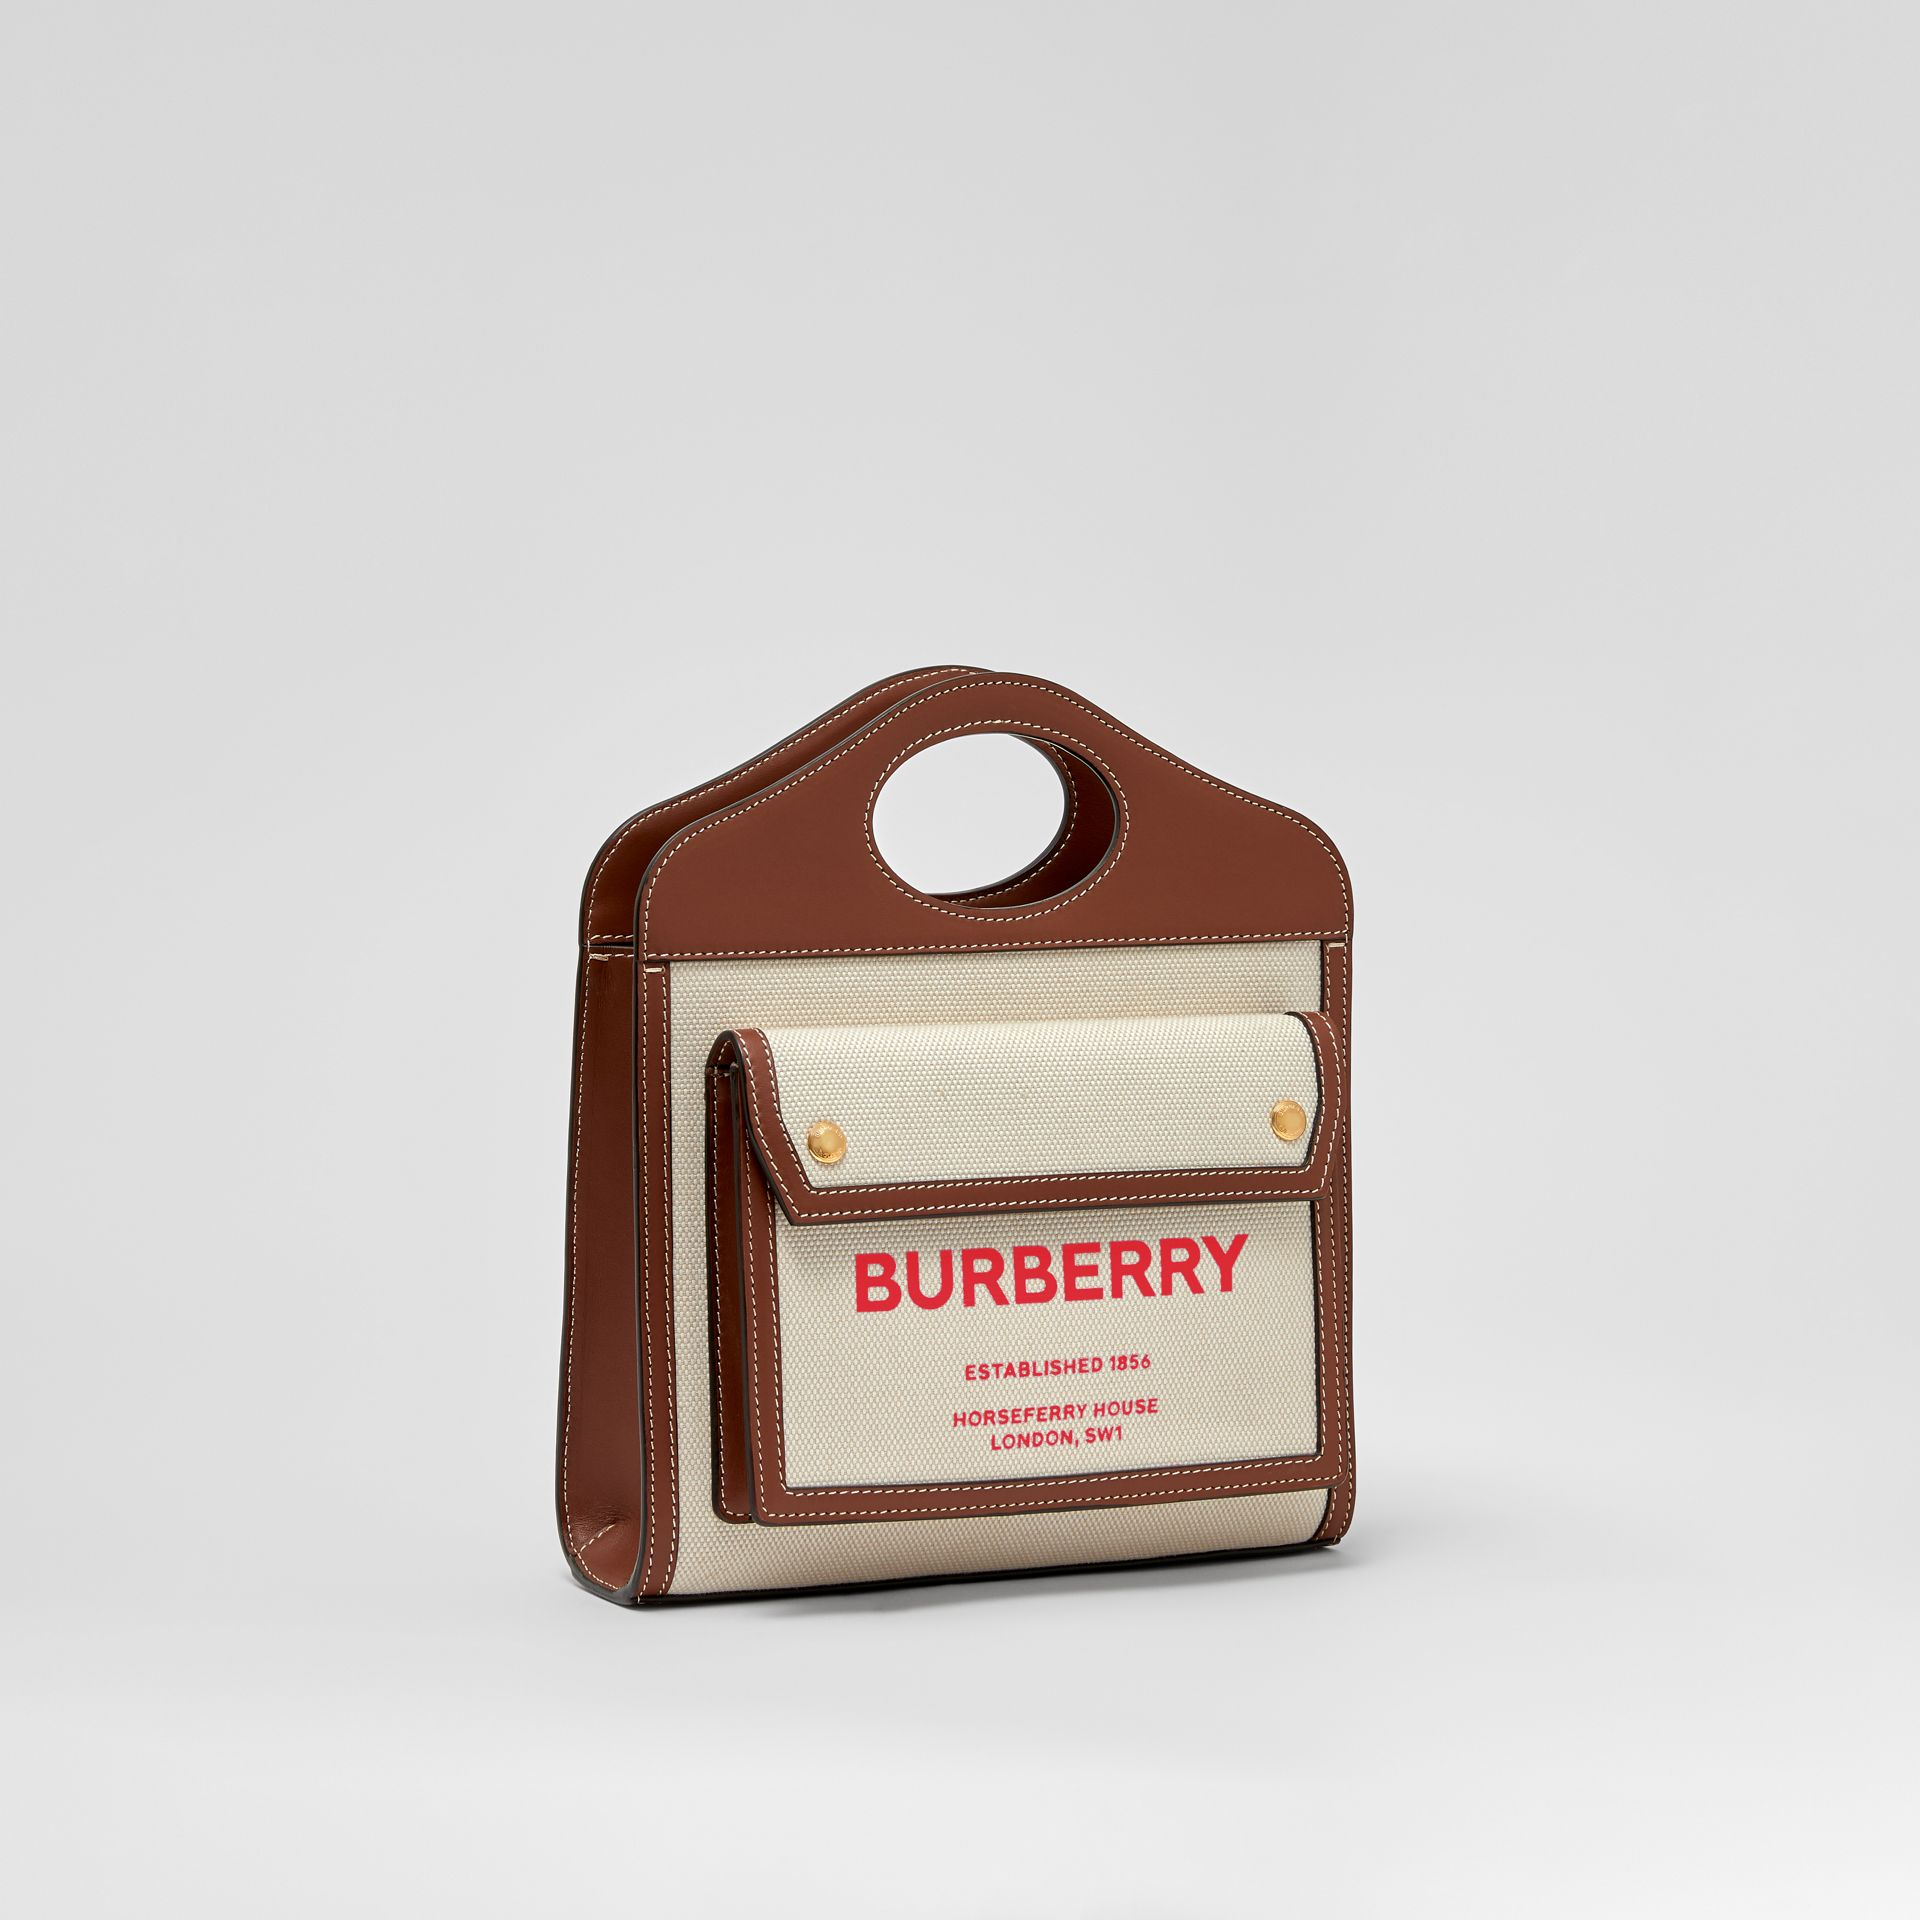 Mini Two-tone Canvas and Leather Pocket Bag in Natural/tan - Women | Burberry - gallery image 5